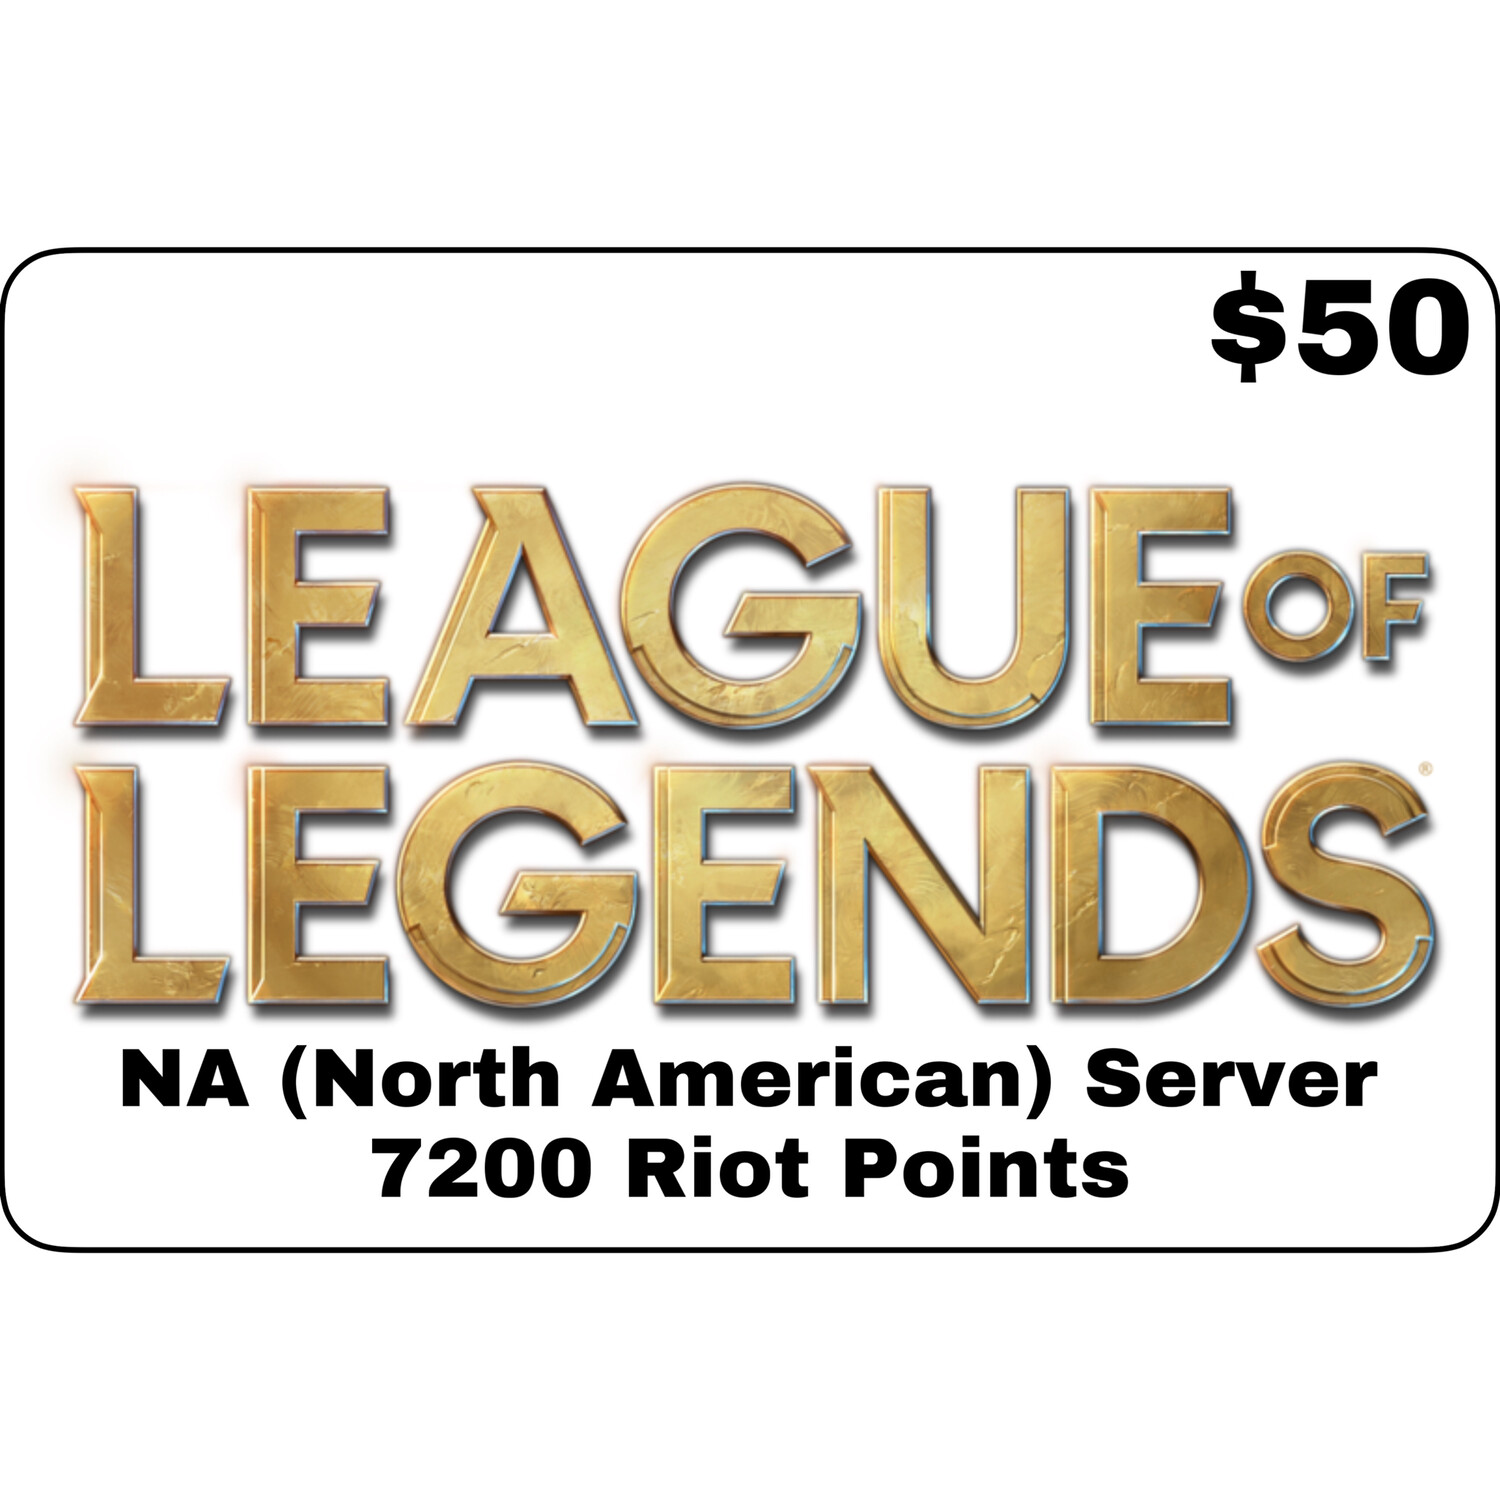 League of Legends $50 (NA Server) 7200 Riot Points